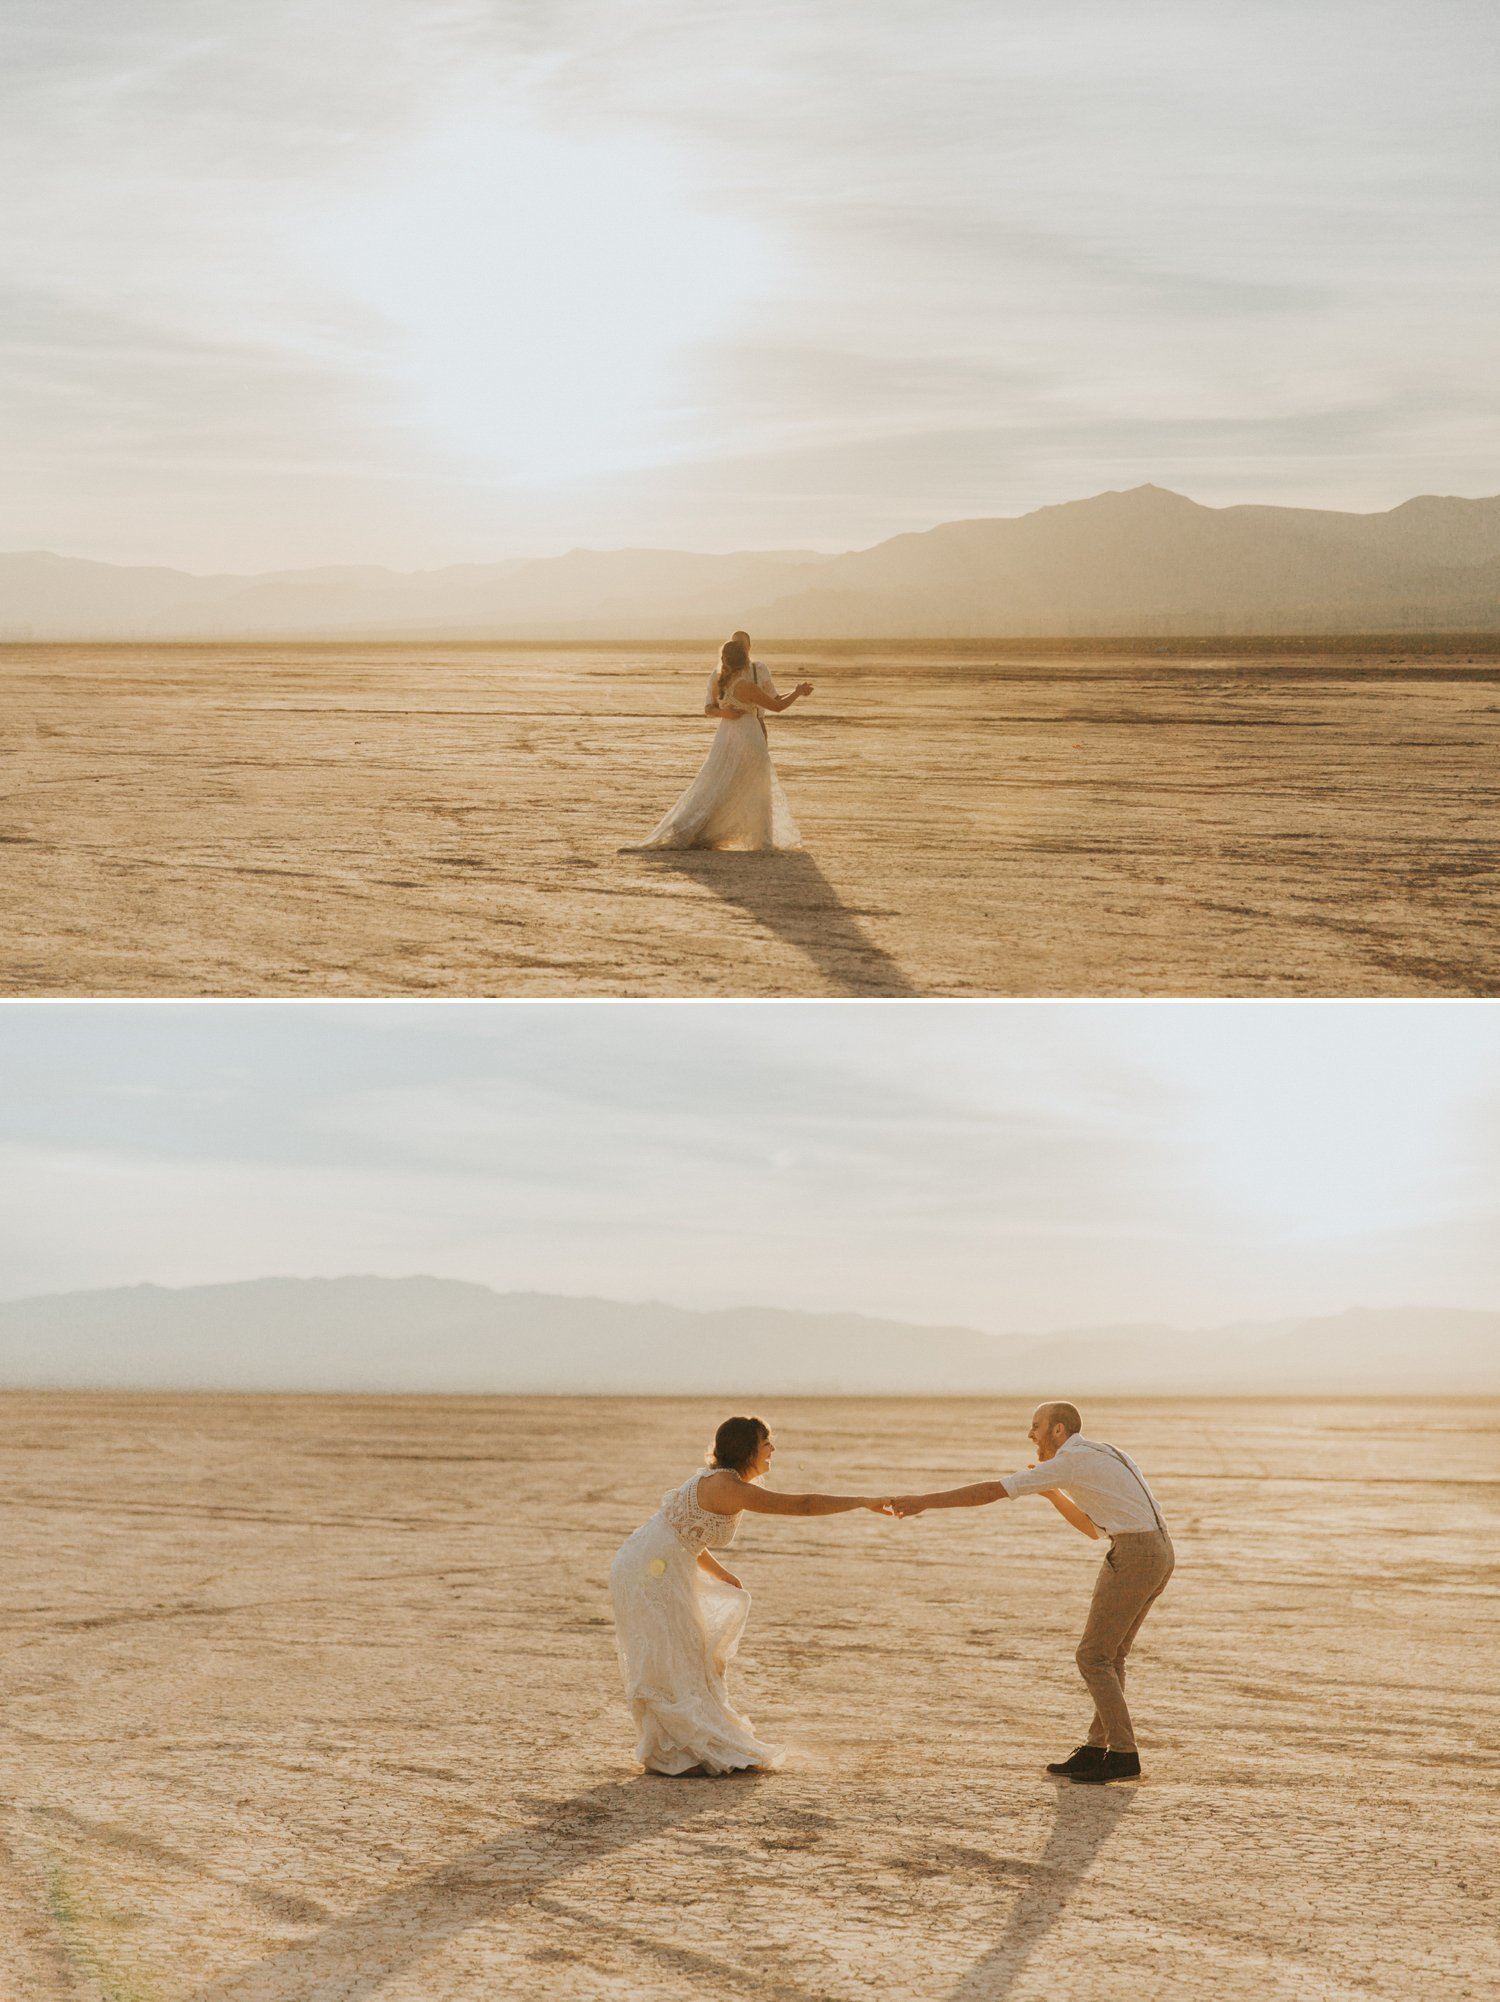 Las Vegas Elopement Dry Lake Bed